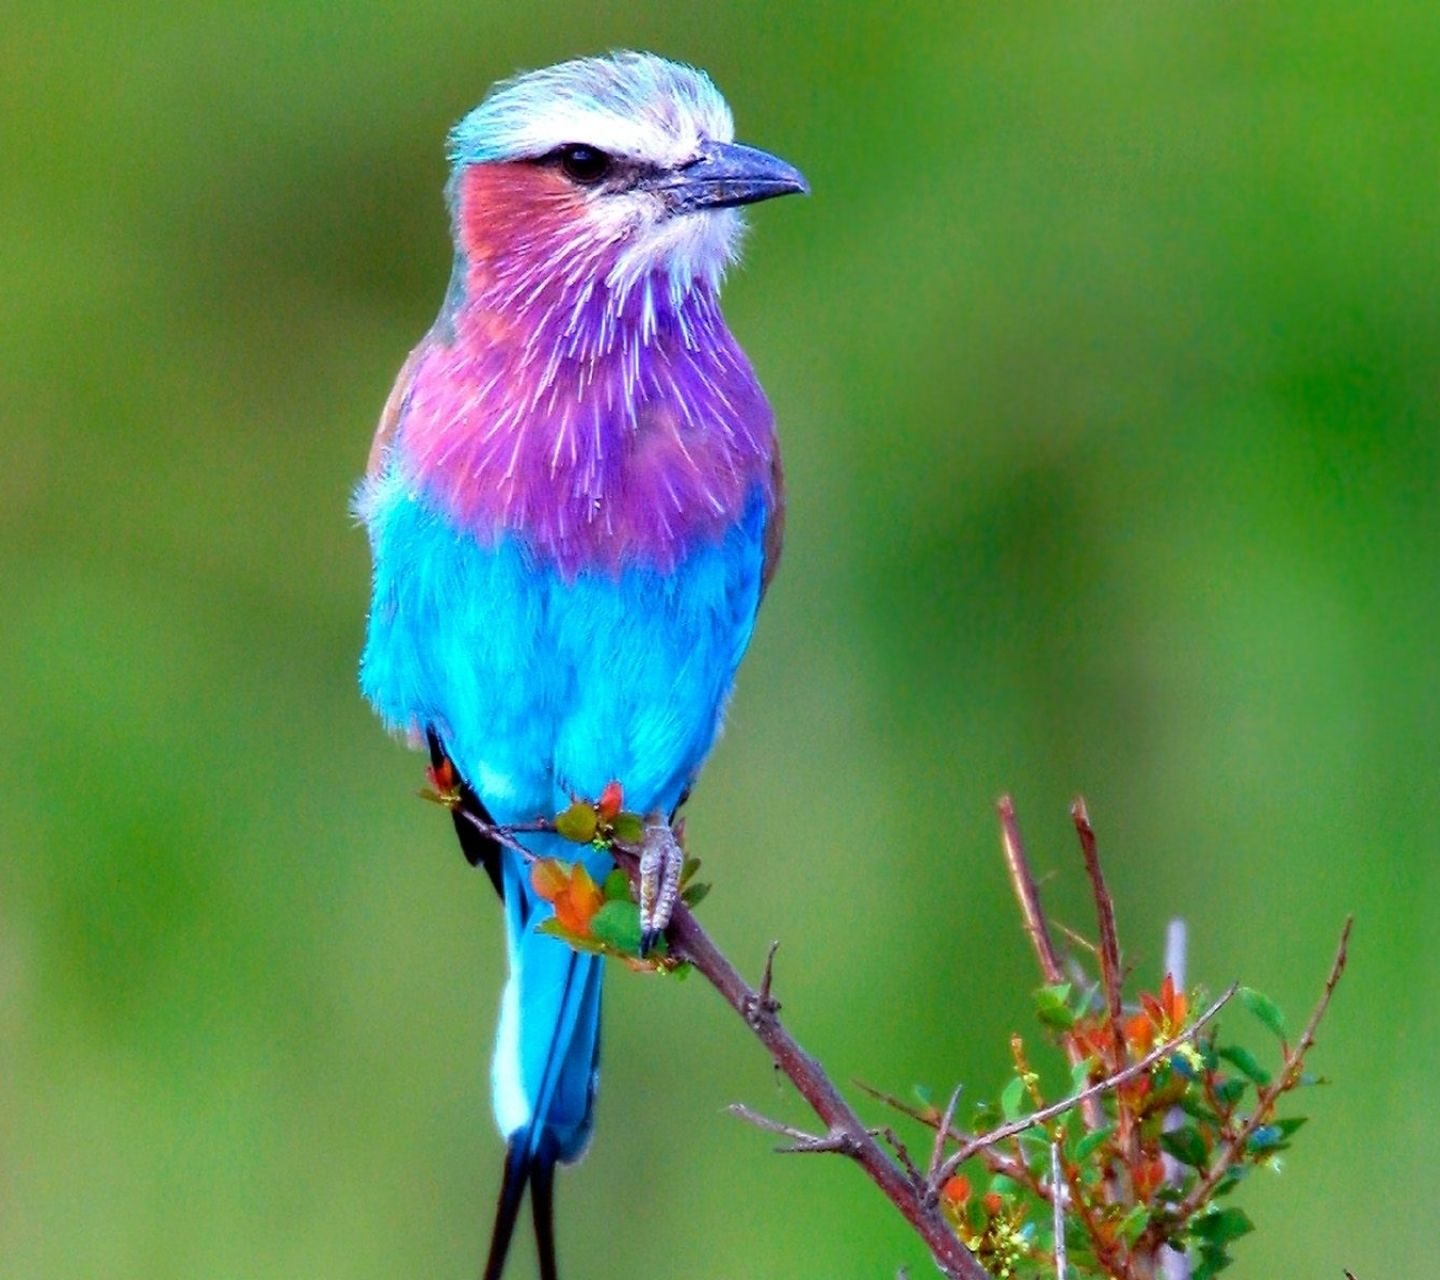 Download This Wallpaper Galaxy J2 Animal X2f Bird 1440x1280 For All Your Phones And Tablets Beautiful Bird Wallpaper Colorful Animals Animals Beautiful